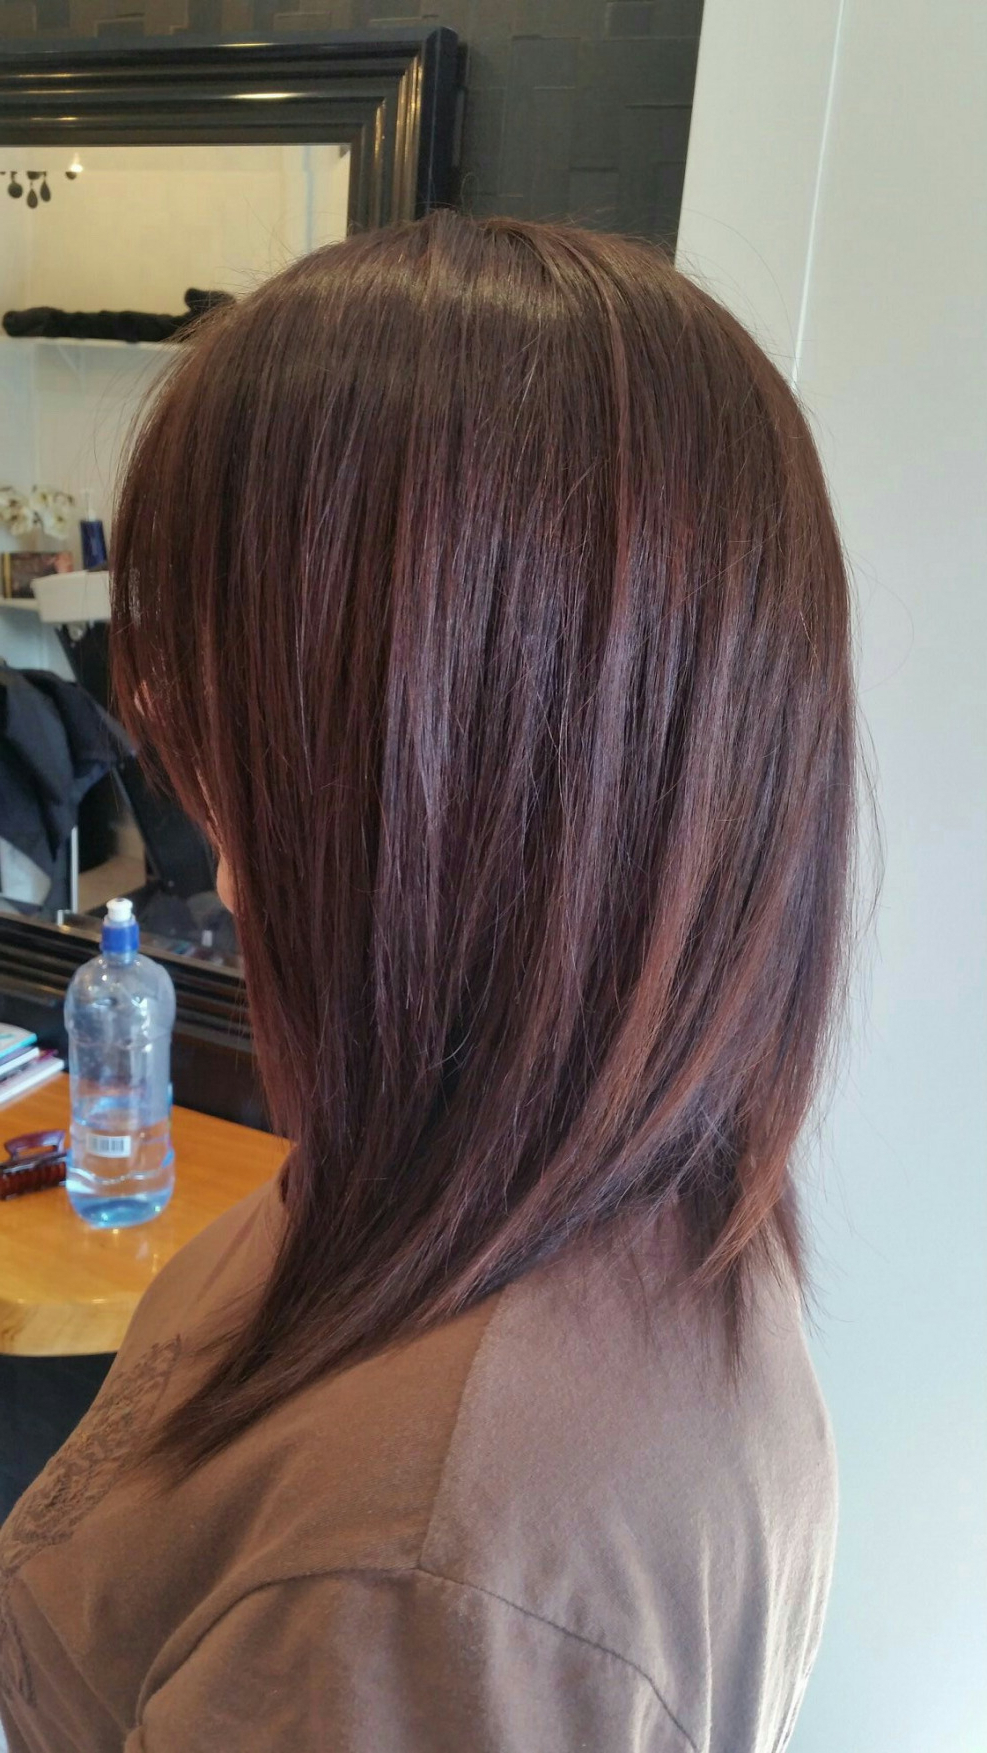 Latest Hairstyles And Haircuts For Women Regarding Well Known V Shaped Layered Medium Haircuts (Gallery 5 of 20)